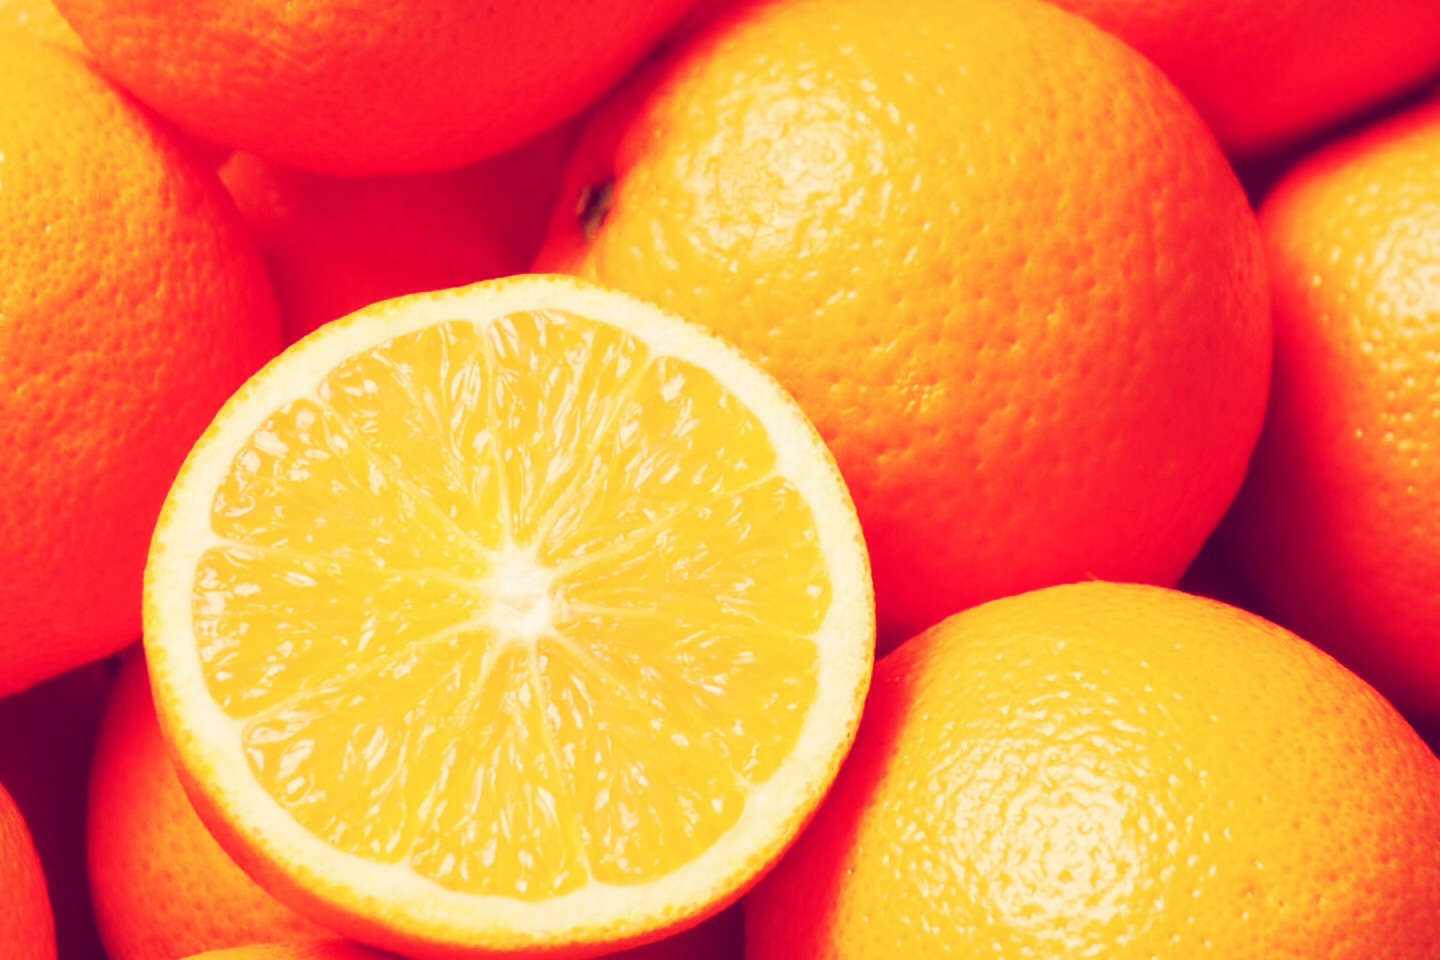 Eat an orange before working out. It'll hydrate you, and prevent your muscles from being so sore the next day!